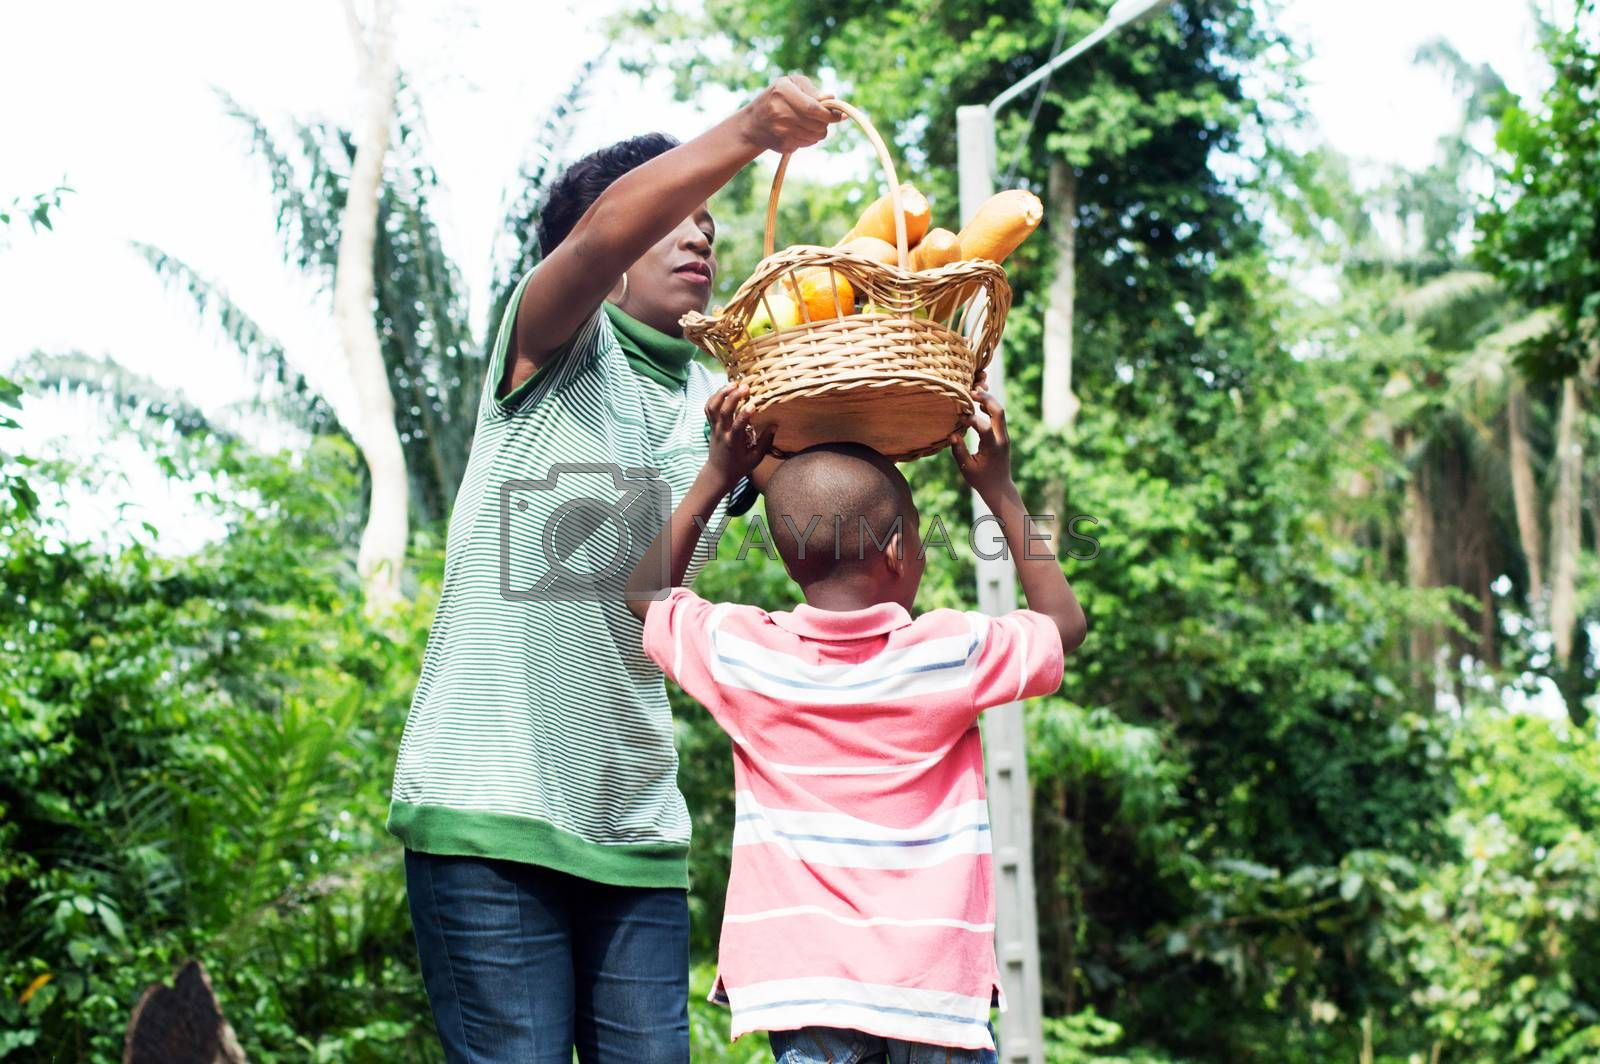 Mom puts the food basket on the head of his son. by vystekimages